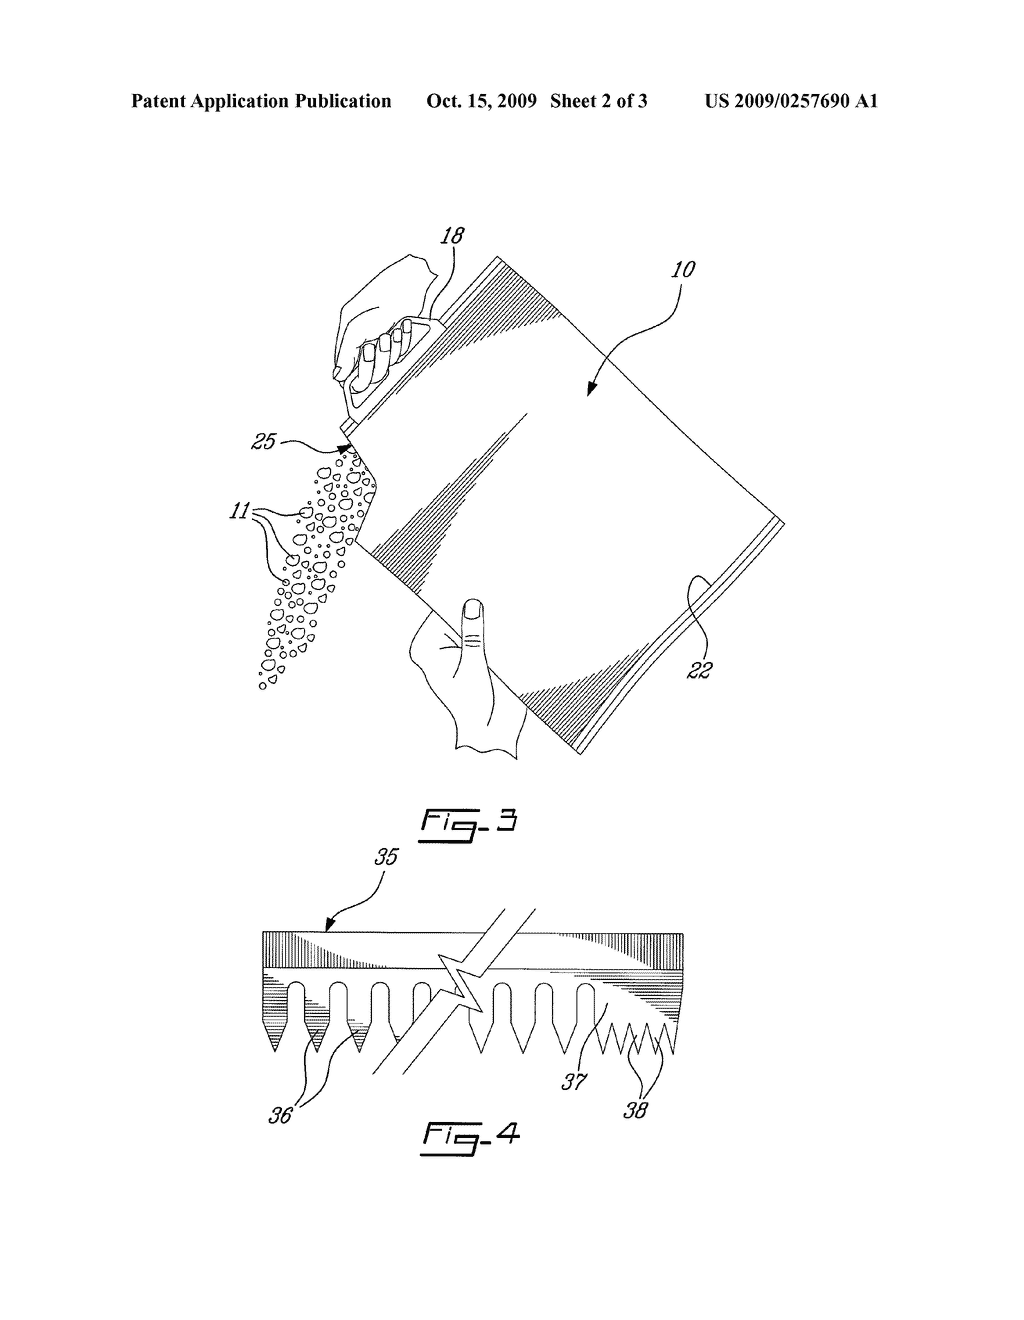 hight resolution of heavy duty plastic bag with easy tear corner spout portion diagram schematic and image 03